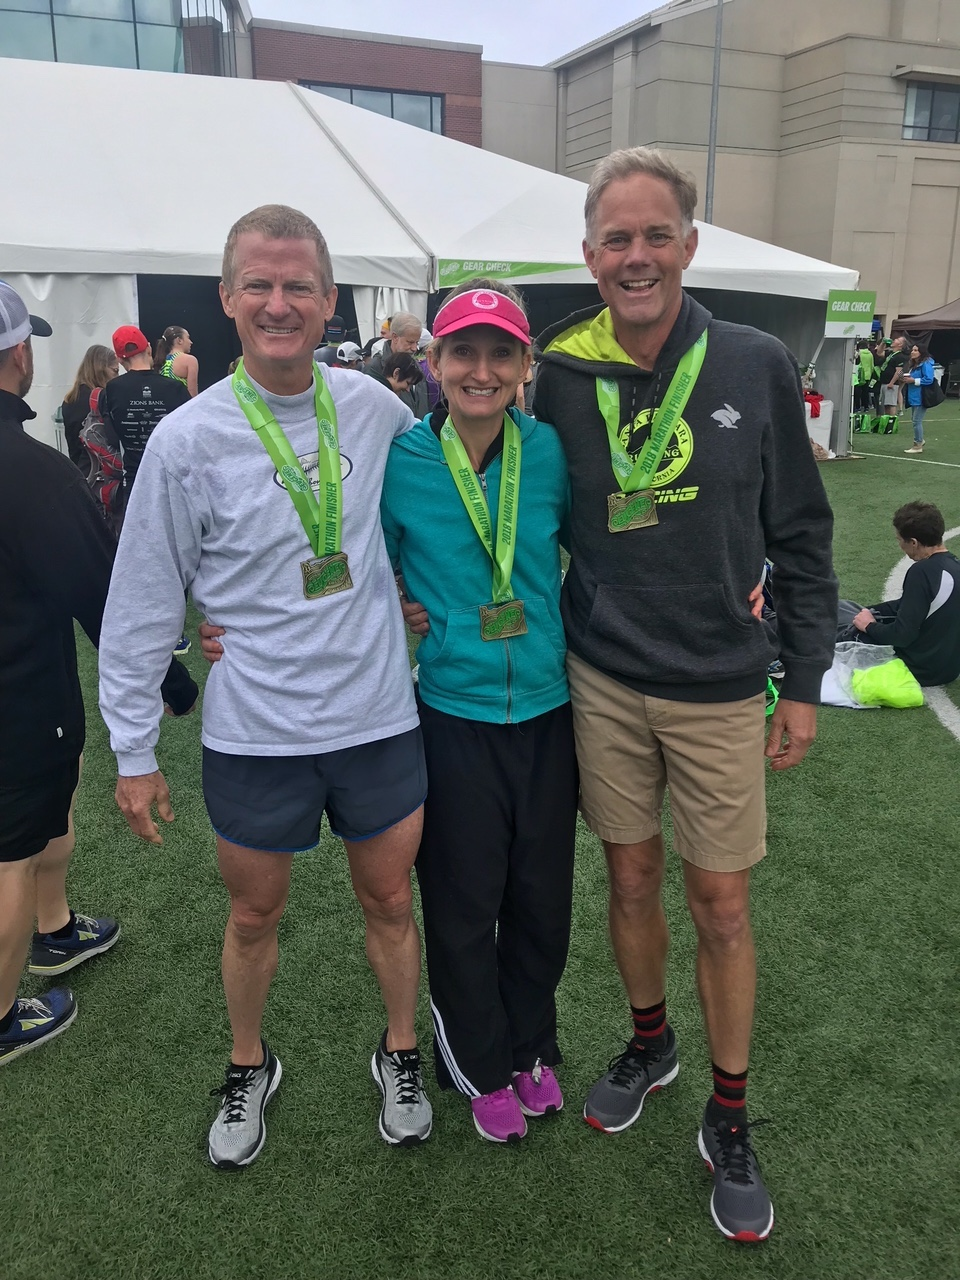 Dan, Katie and Jim qualify for Boston 2019